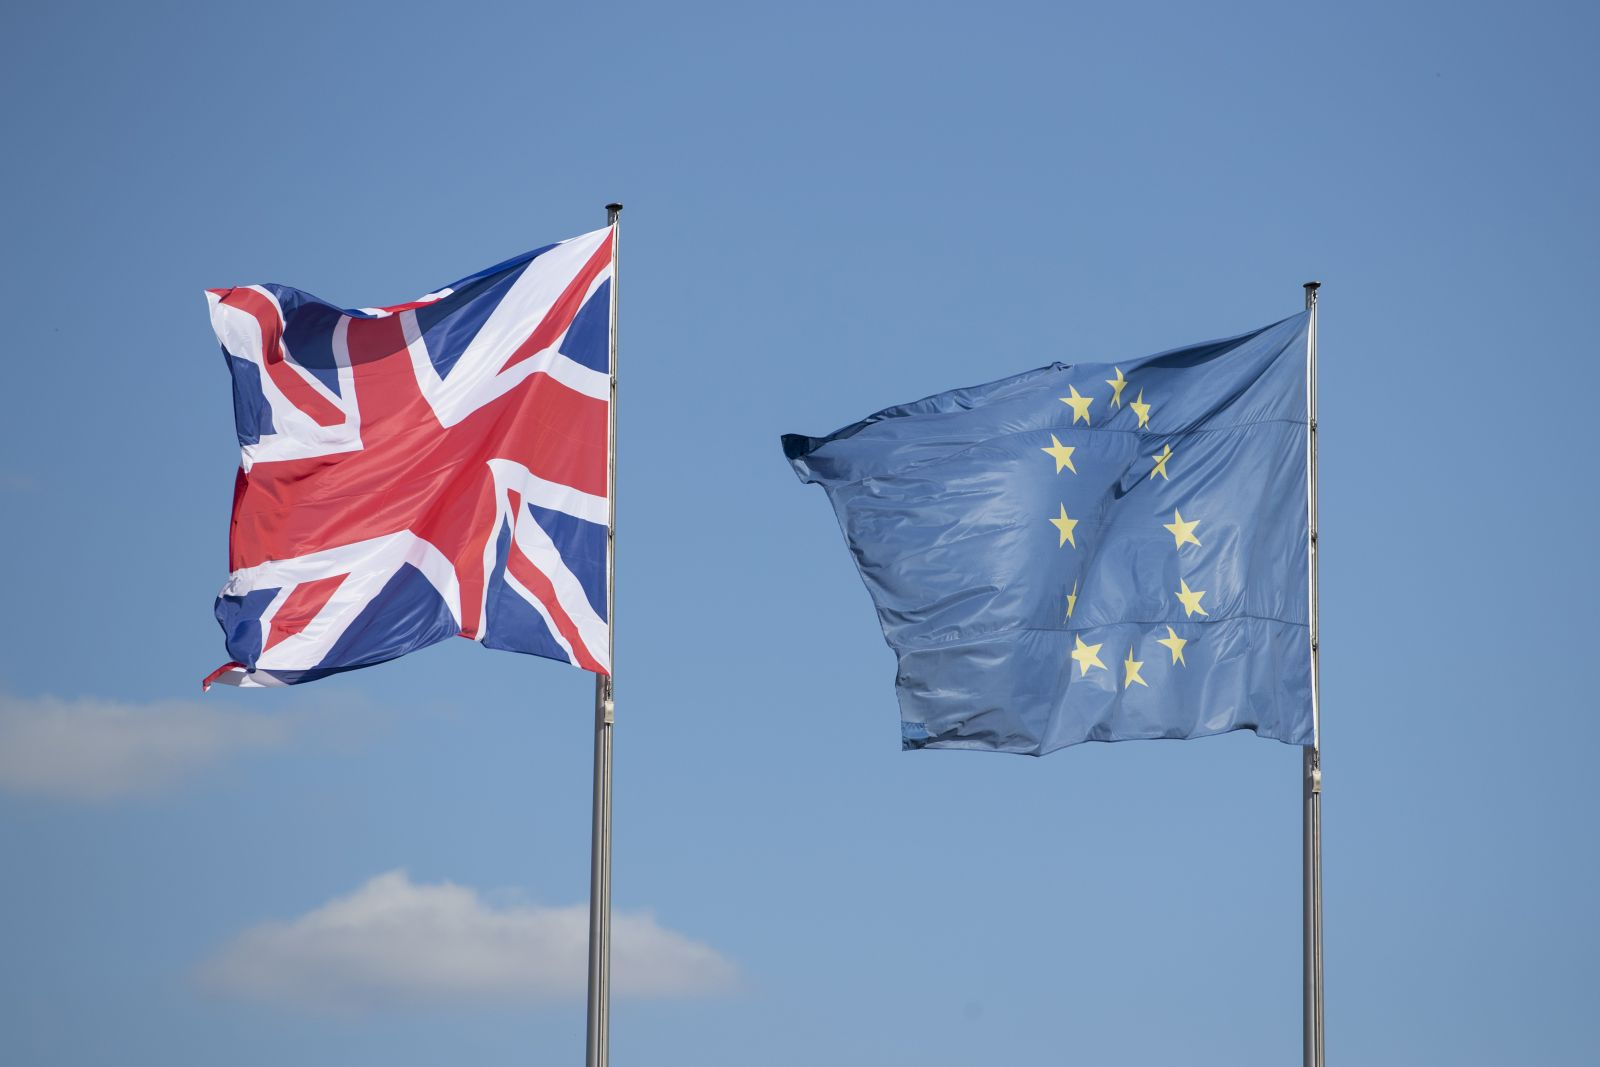 British Union and European Union flags fly side-by-side.